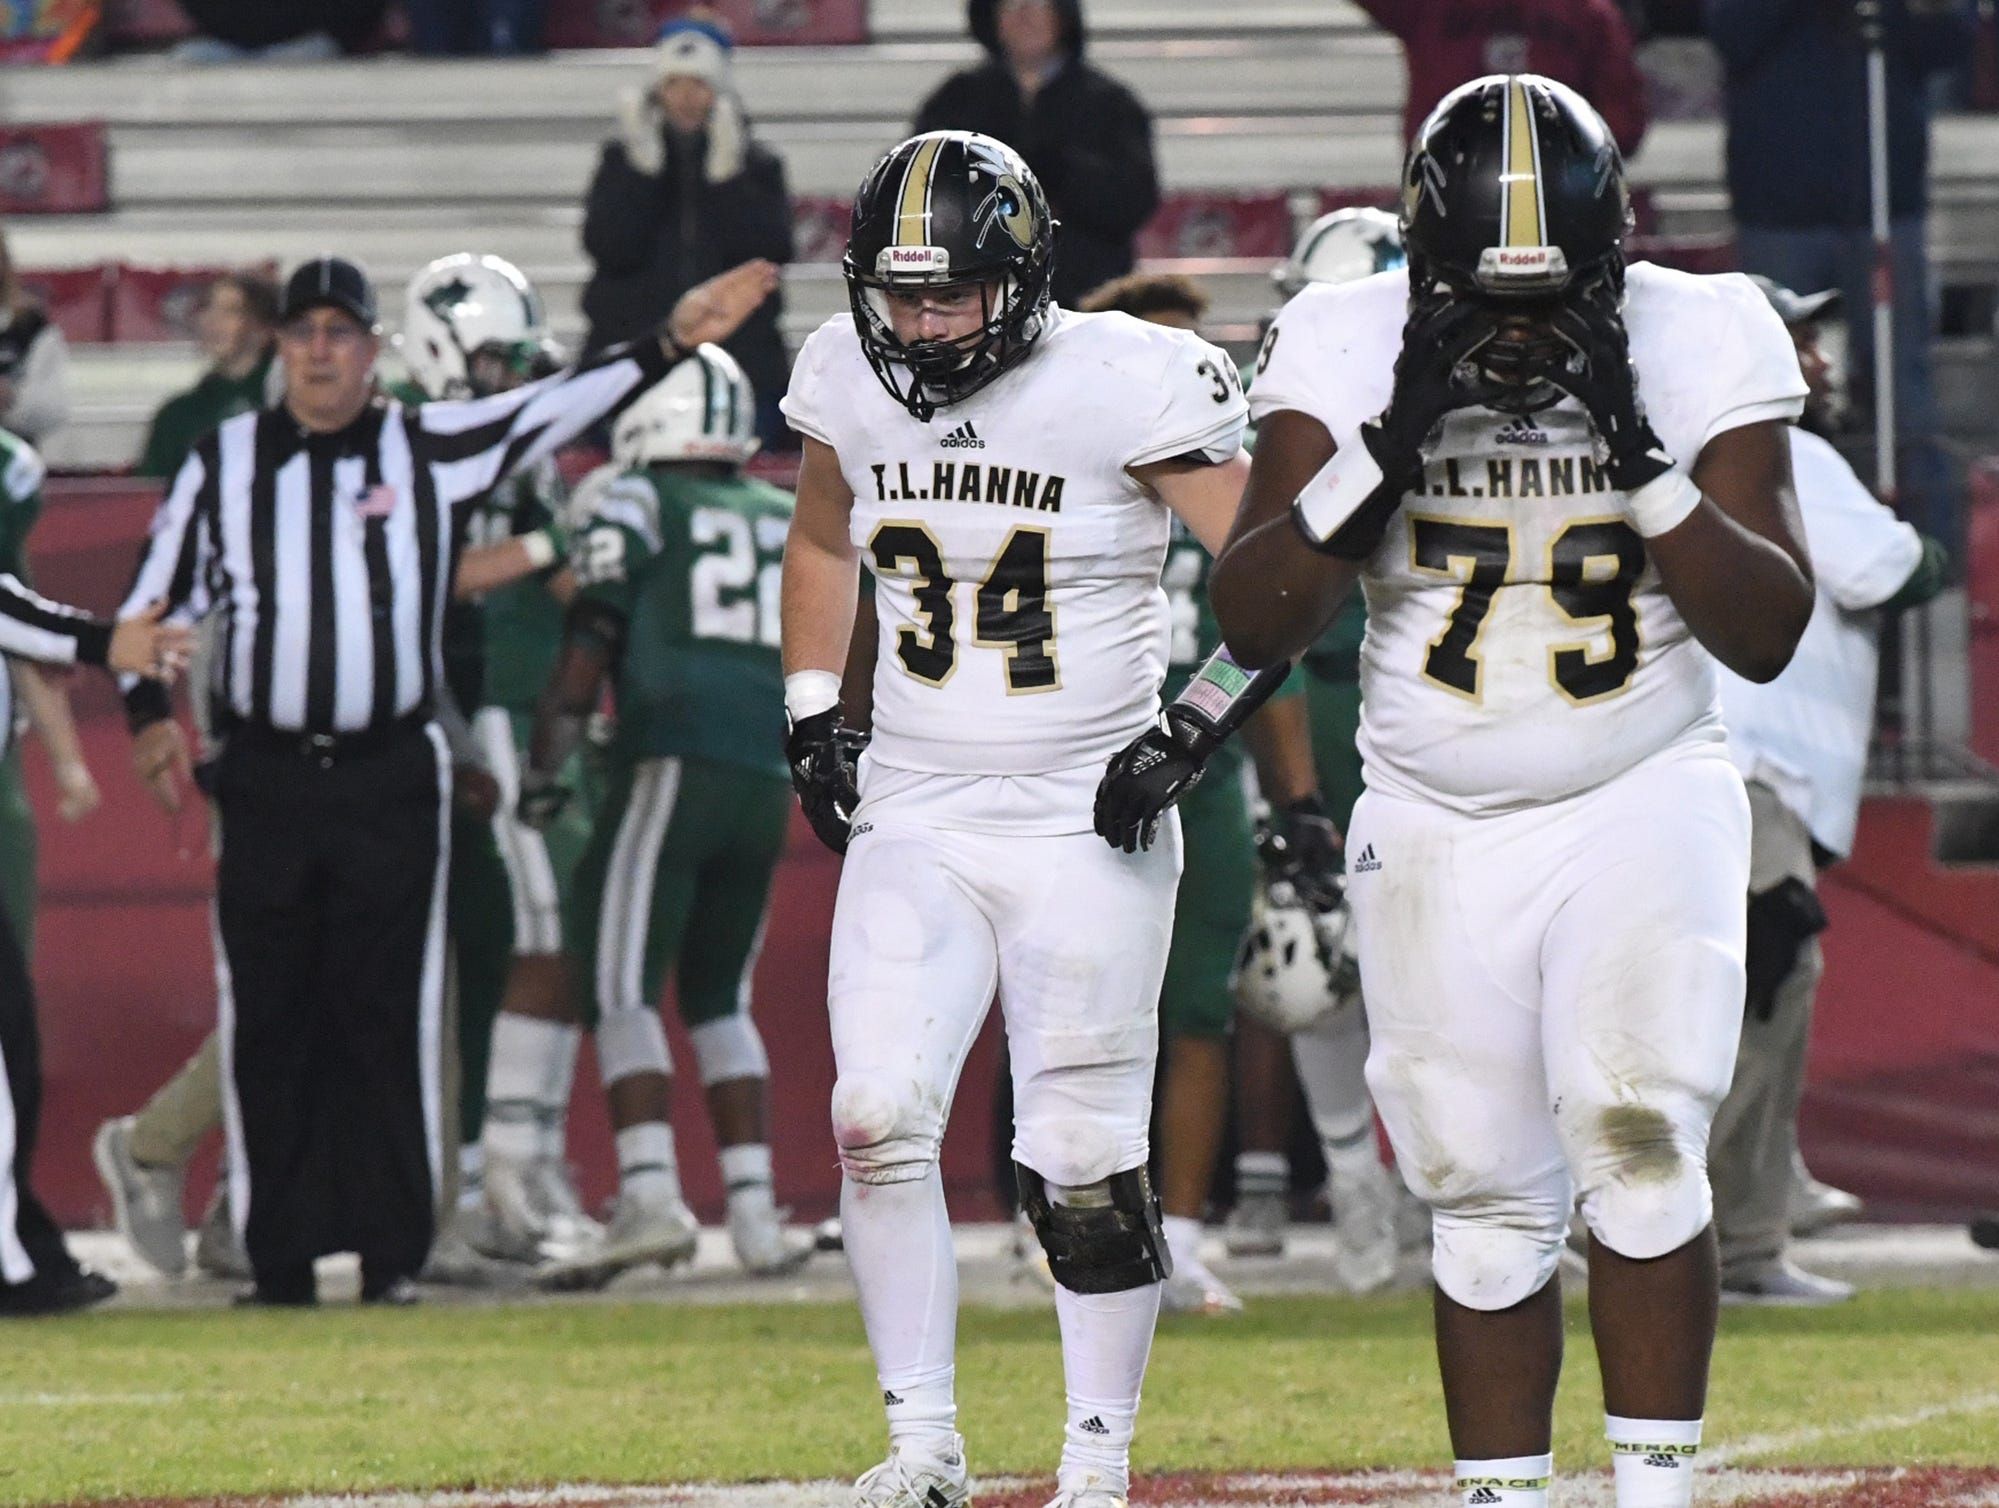 TL Hanna senior Winter Barrett (34) andTL Hanna sophomore Jahari Couser (79) react after a teammate fumbled during the fourth quarter of the Class AAAAA state championship game at Williams-Brice Stadium in Columbia Saturday, December 8, 2018.